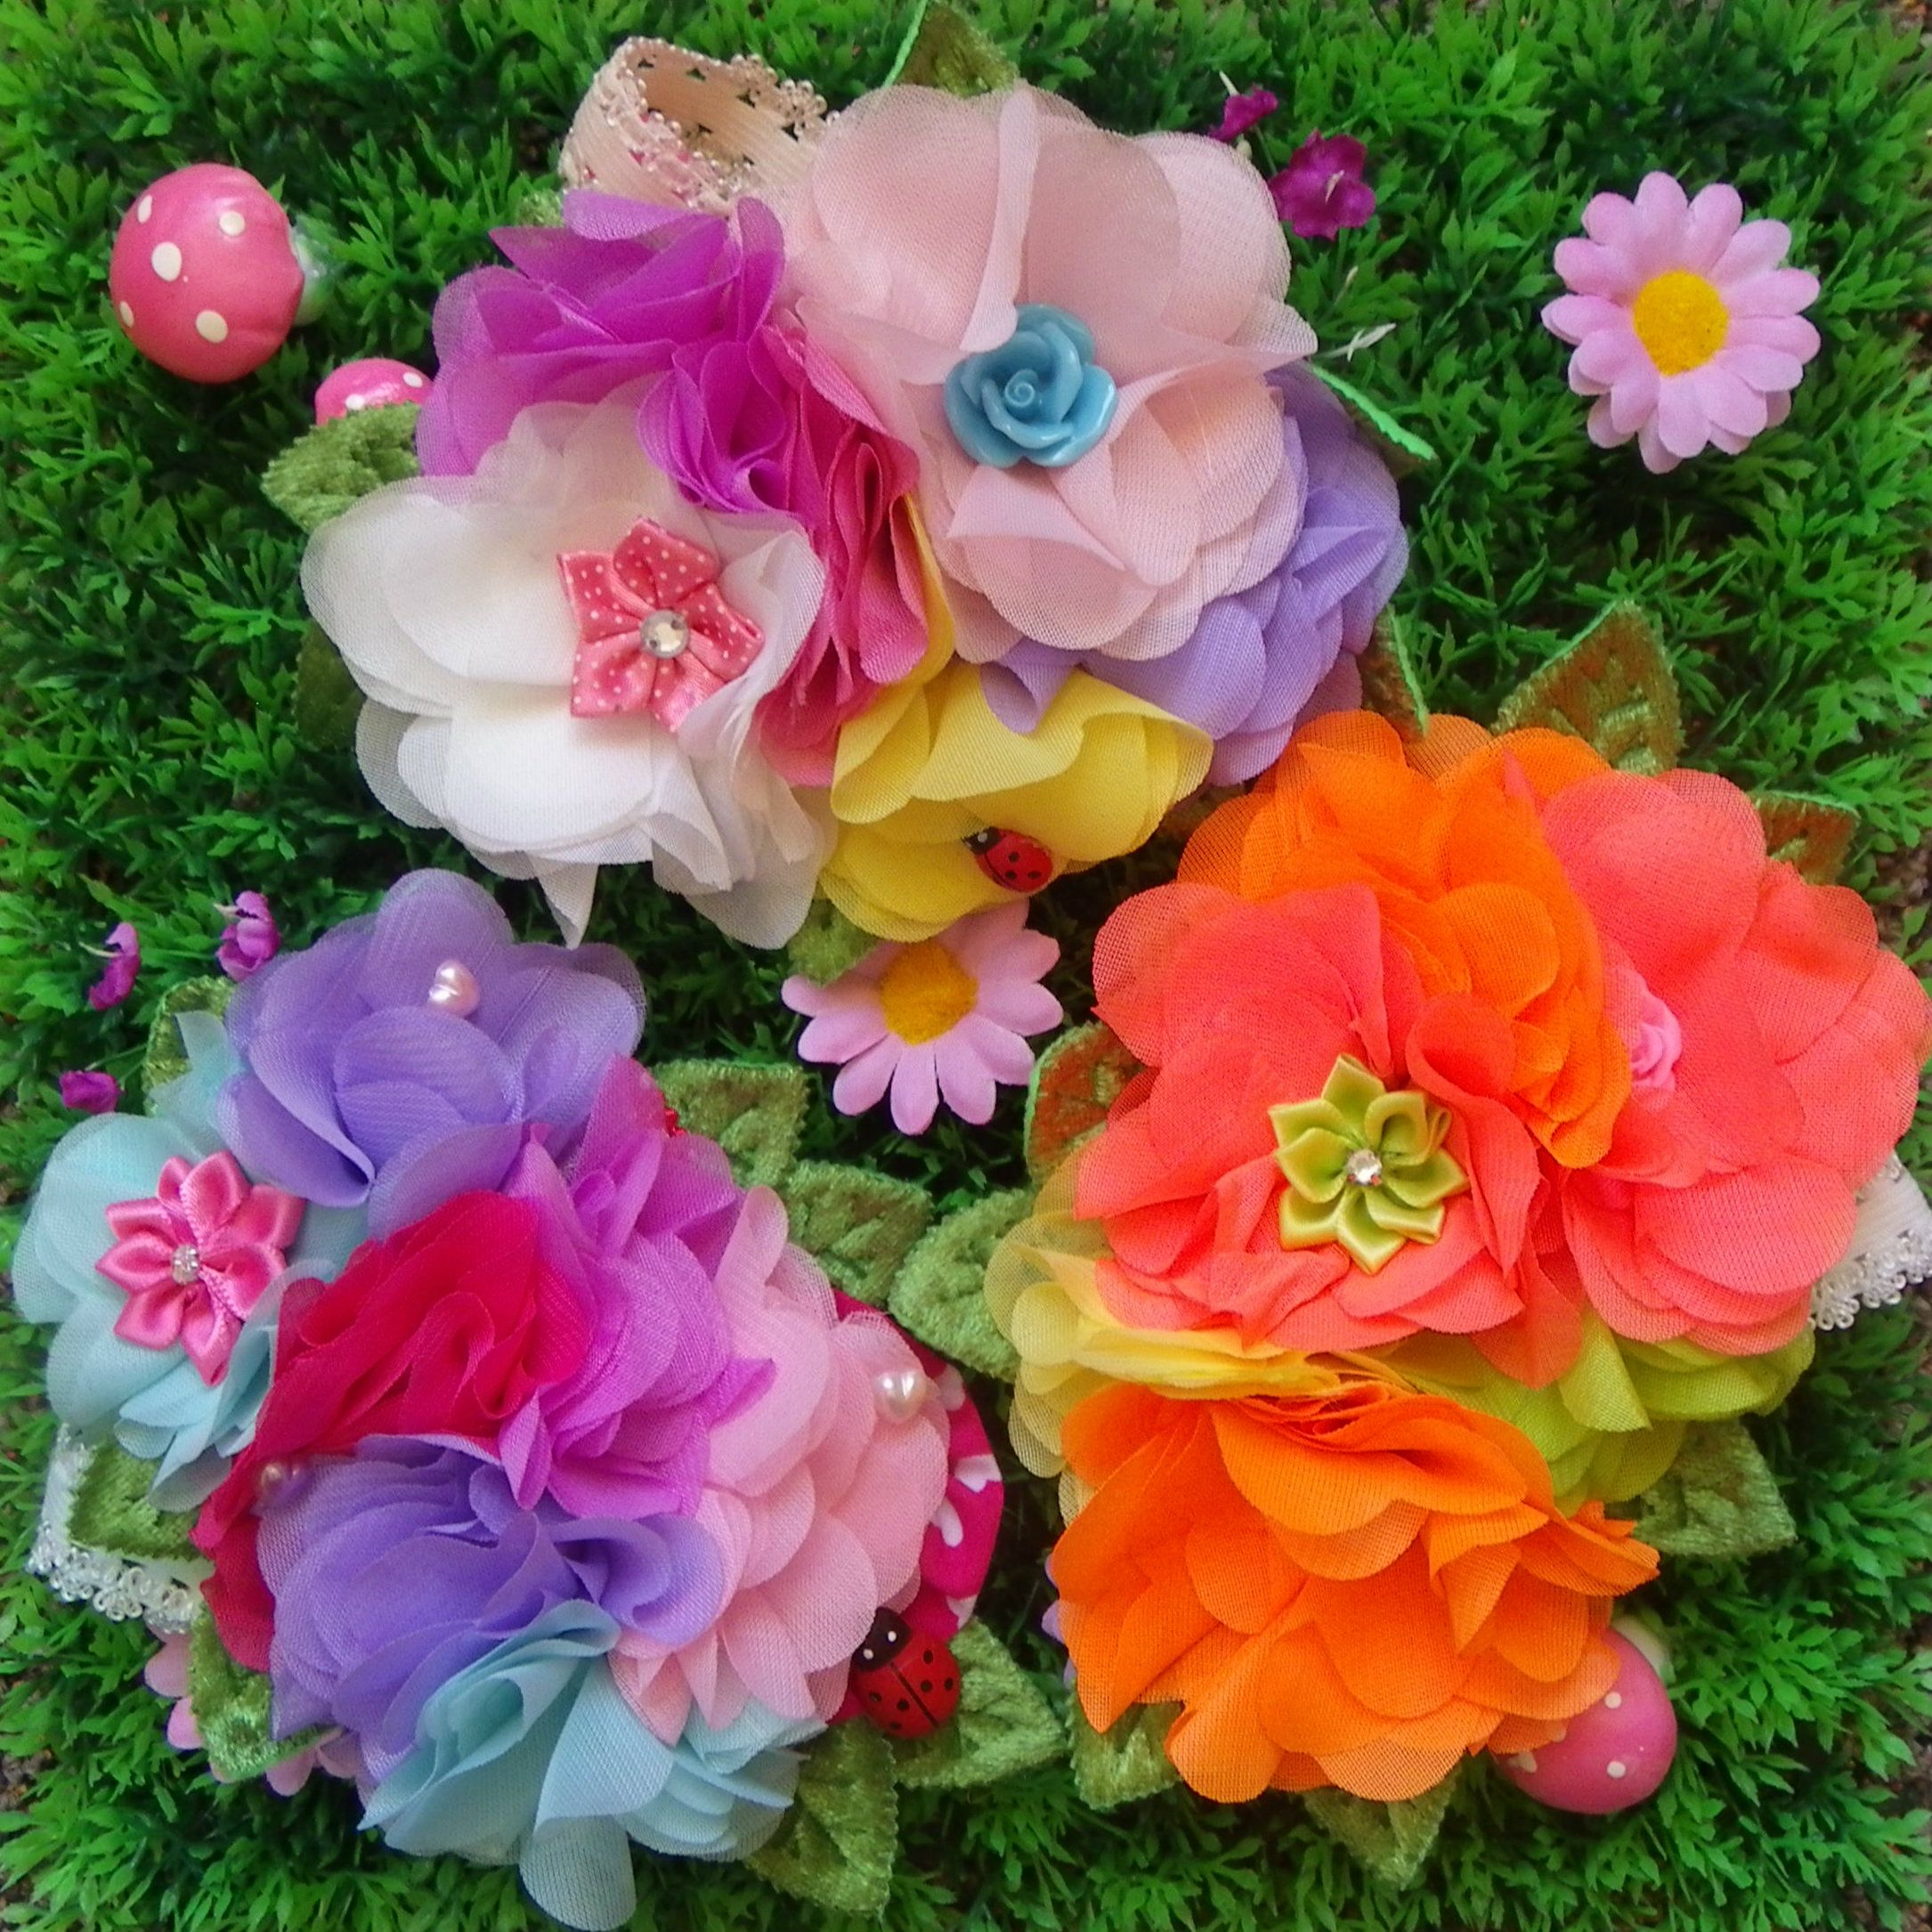 Neon Pastel Rainbow And Springtime Flower Crowns Www Facebook Com